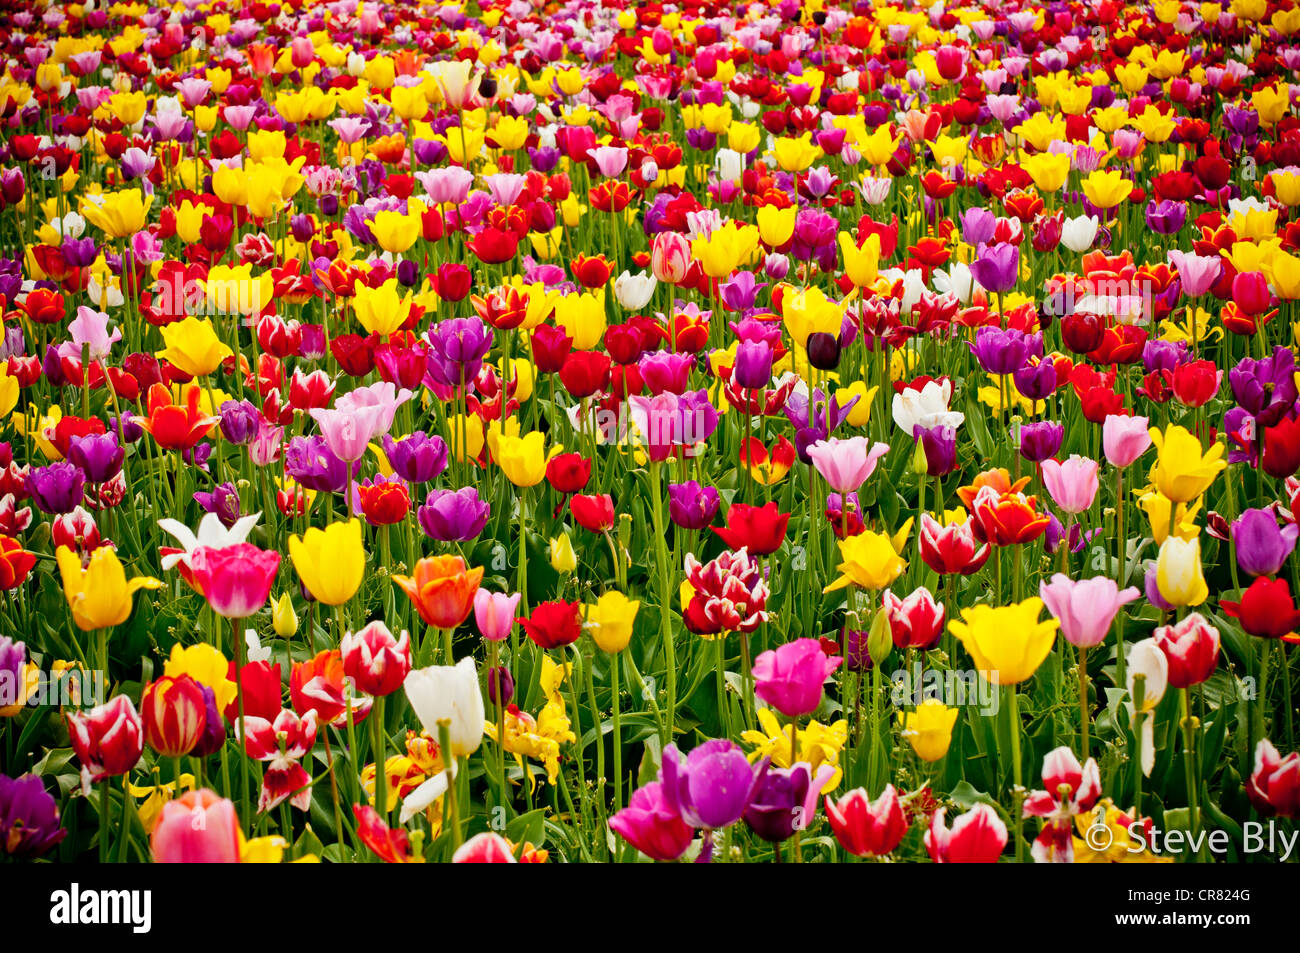 Spring tulip flowers in bloom at the Wooden Shoe Tulip Farm in Woodburn, Oregon - Stock Image